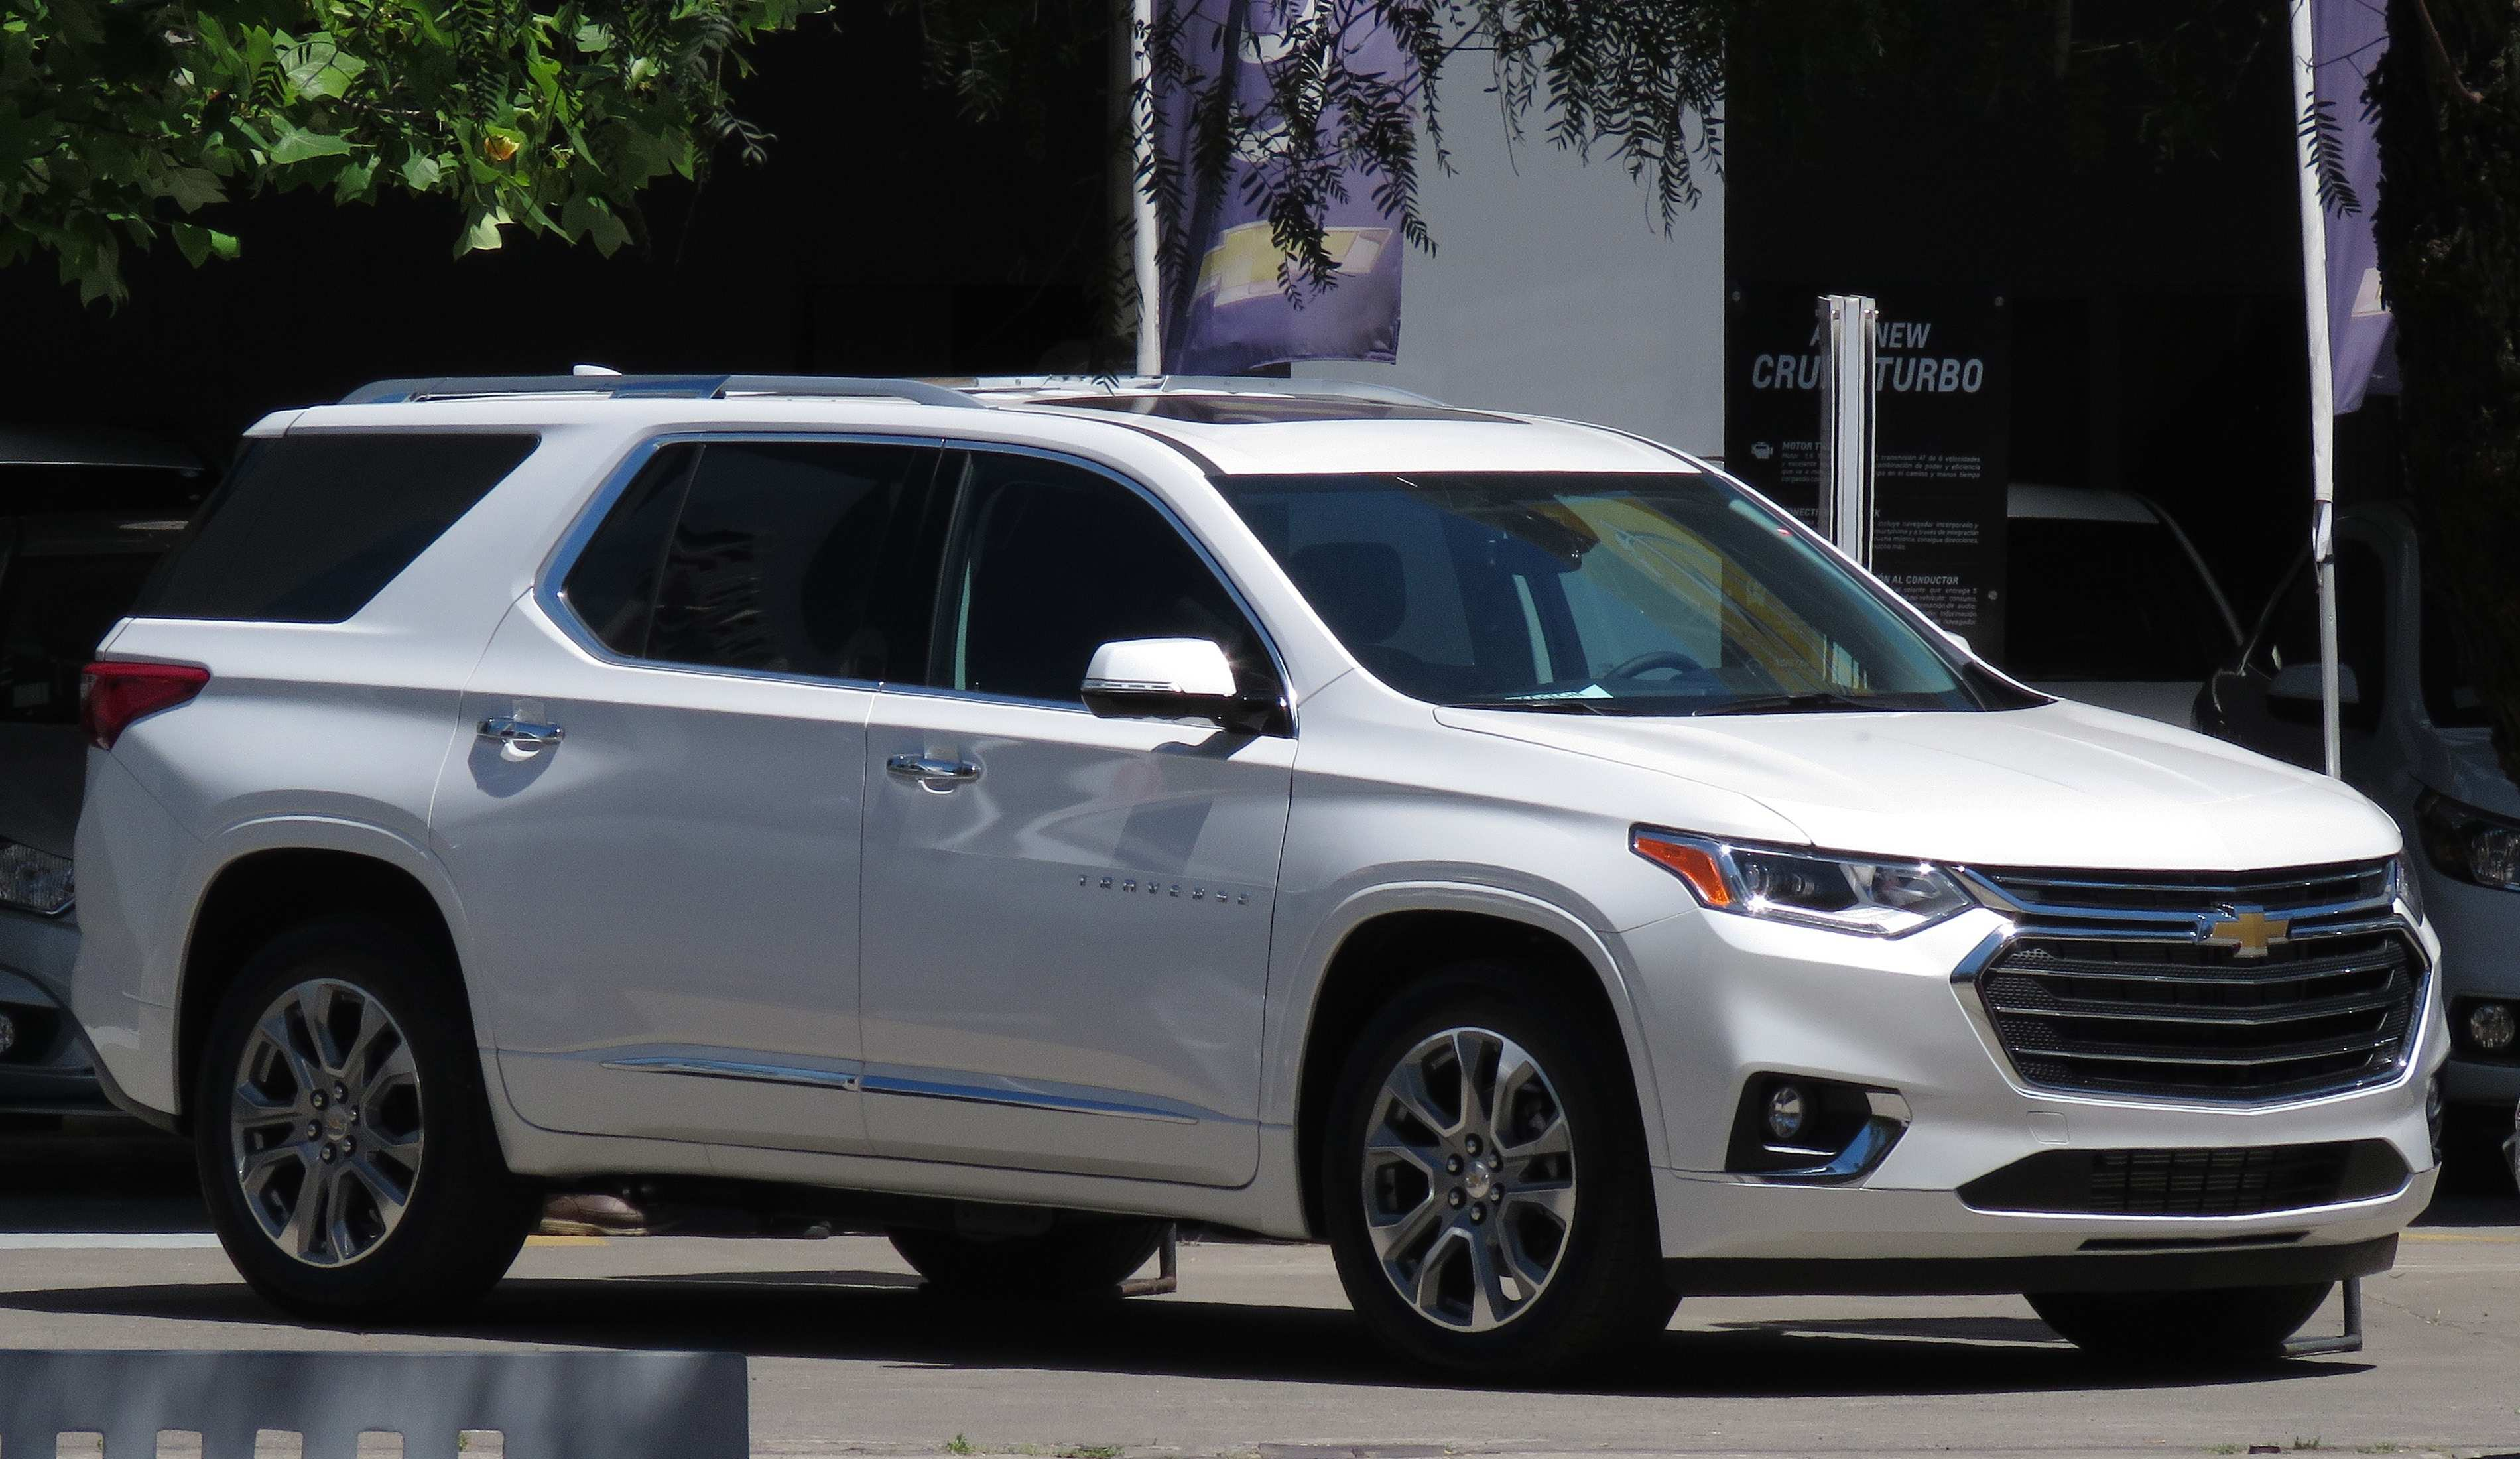 57 All New Best High Country Chevrolet 2019 Price And Review First Drive by Best High Country Chevrolet 2019 Price And Review